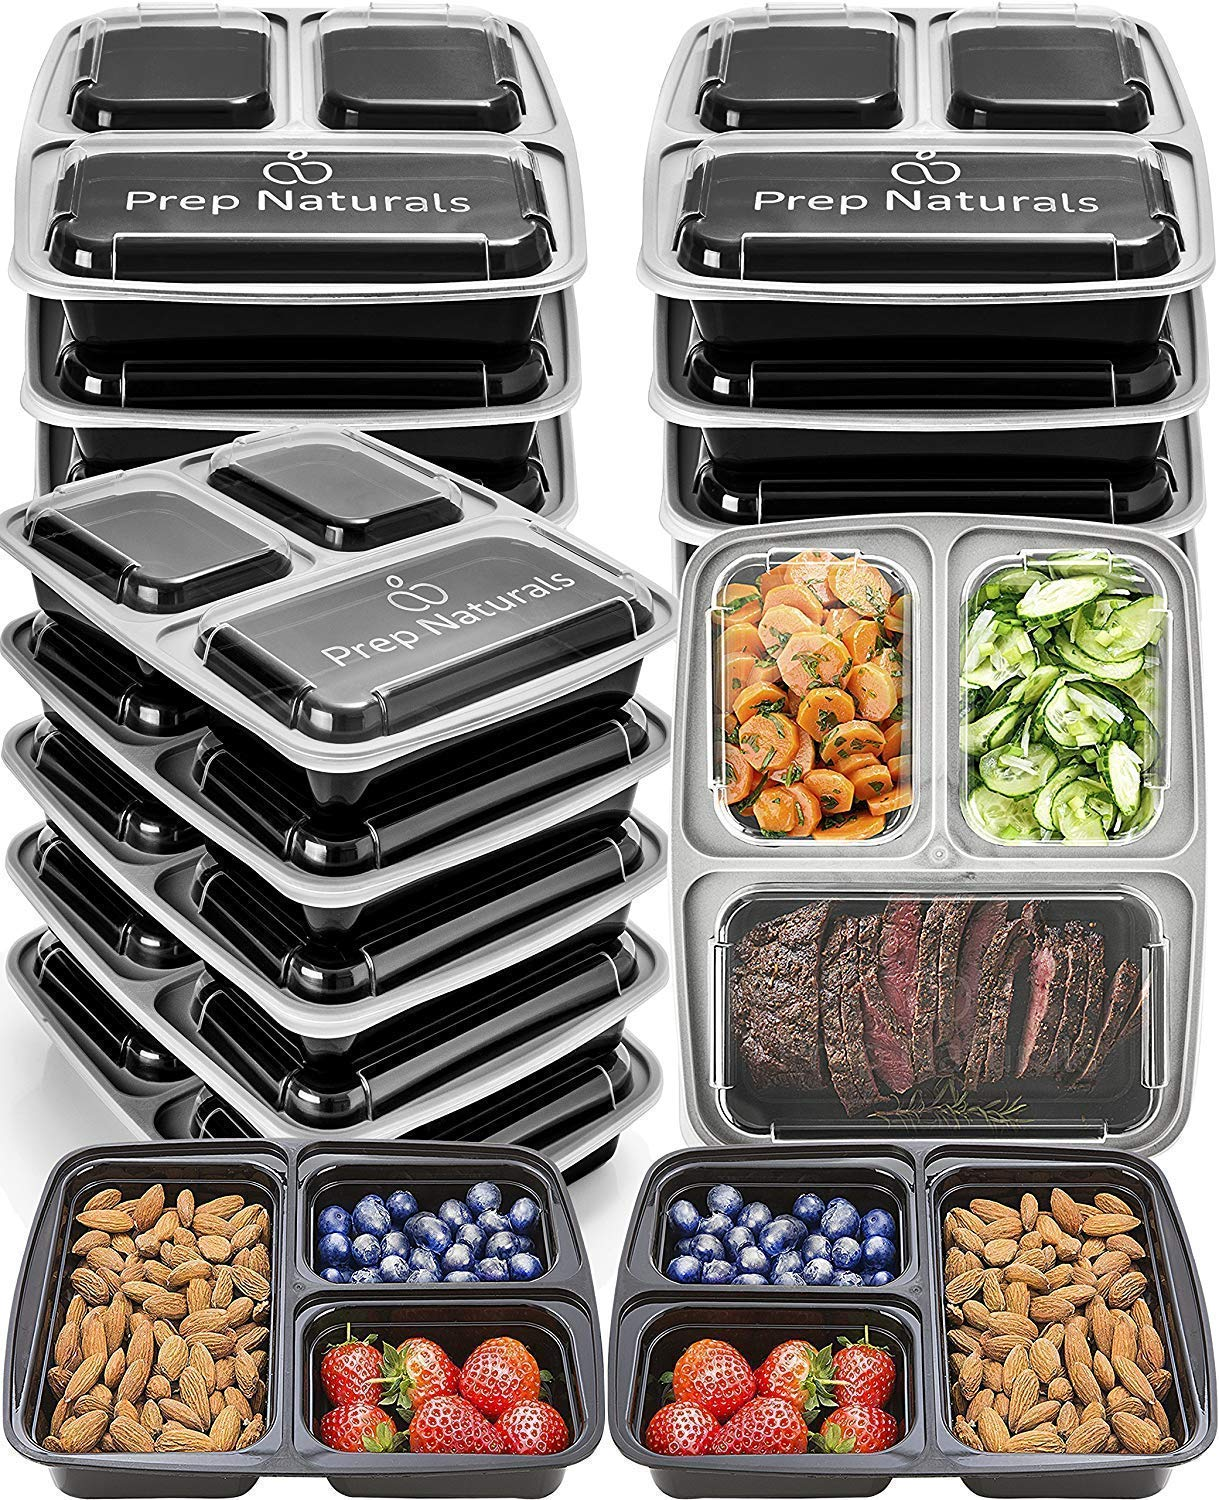 Meal Prep Containers 3 Compartment [15 pack, 32oz] - Bento Box Food Containers BPA Free Bento Boxes For Adults Lunch Containers - Plastic Containers with Lids Food Storage Containers with Lids by Prep Naturals (Image #1)